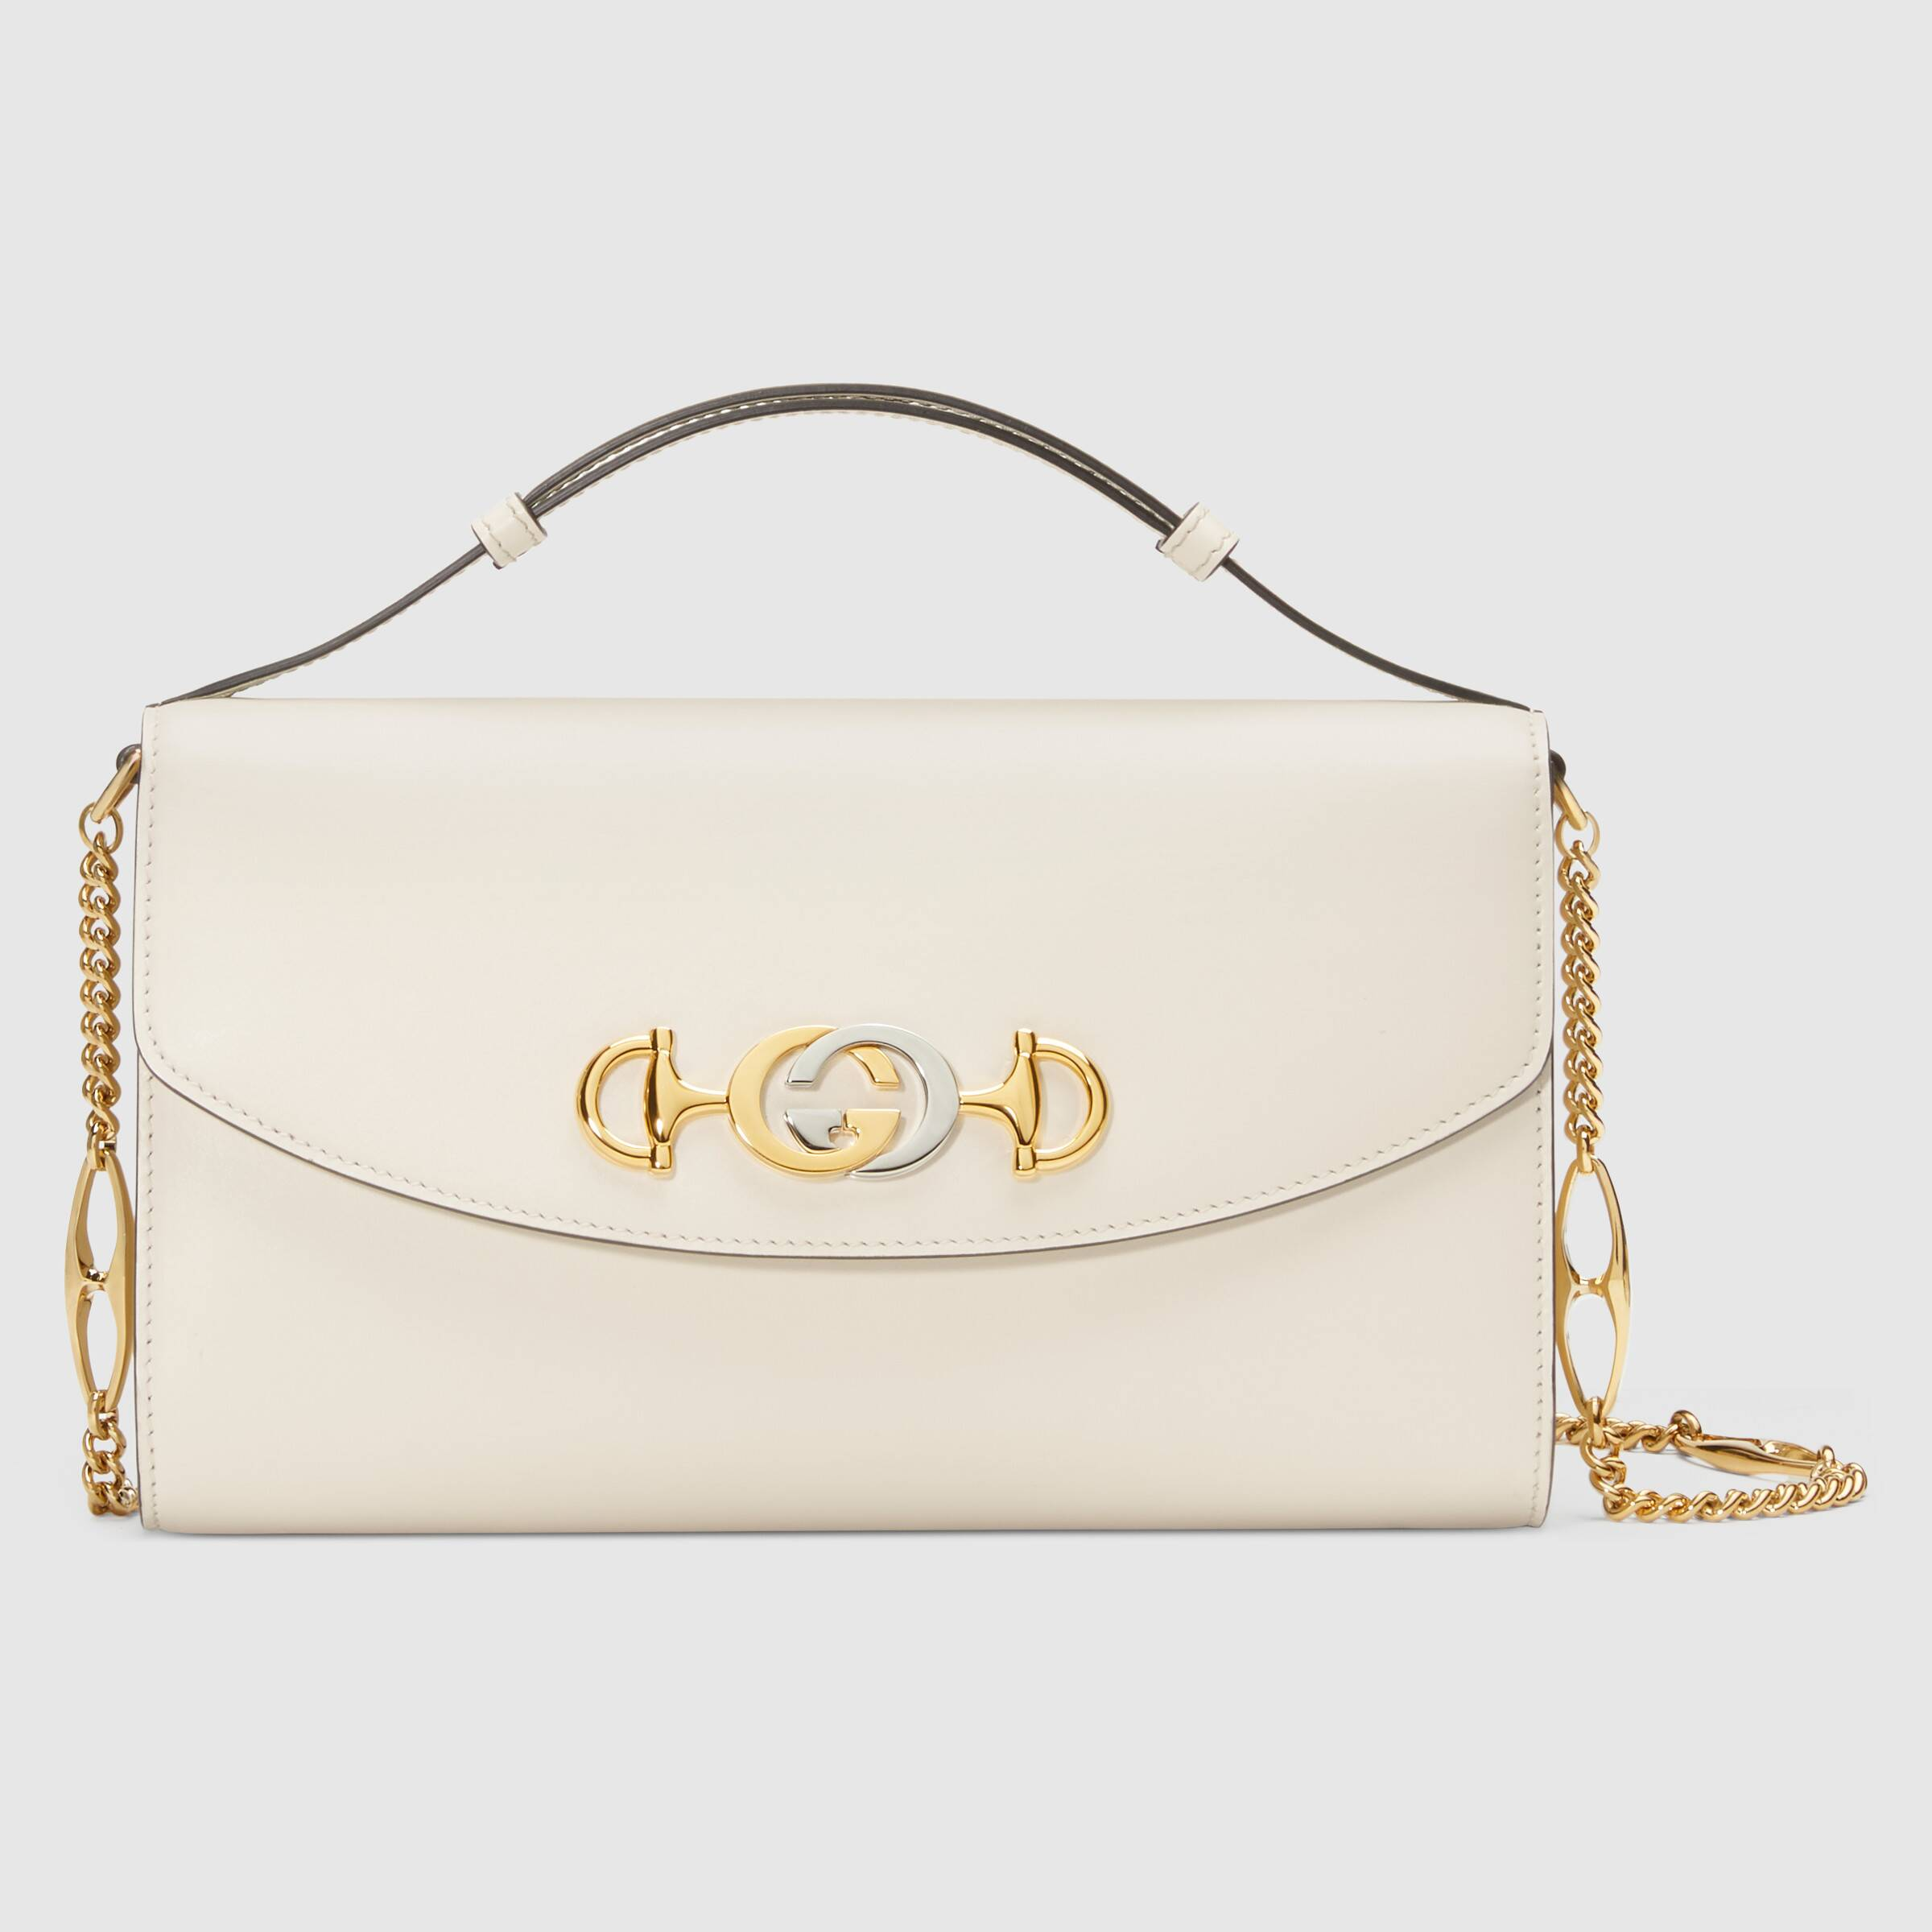 GUCCI - Zumi Smooth Leather Small Shoulder Bag - White